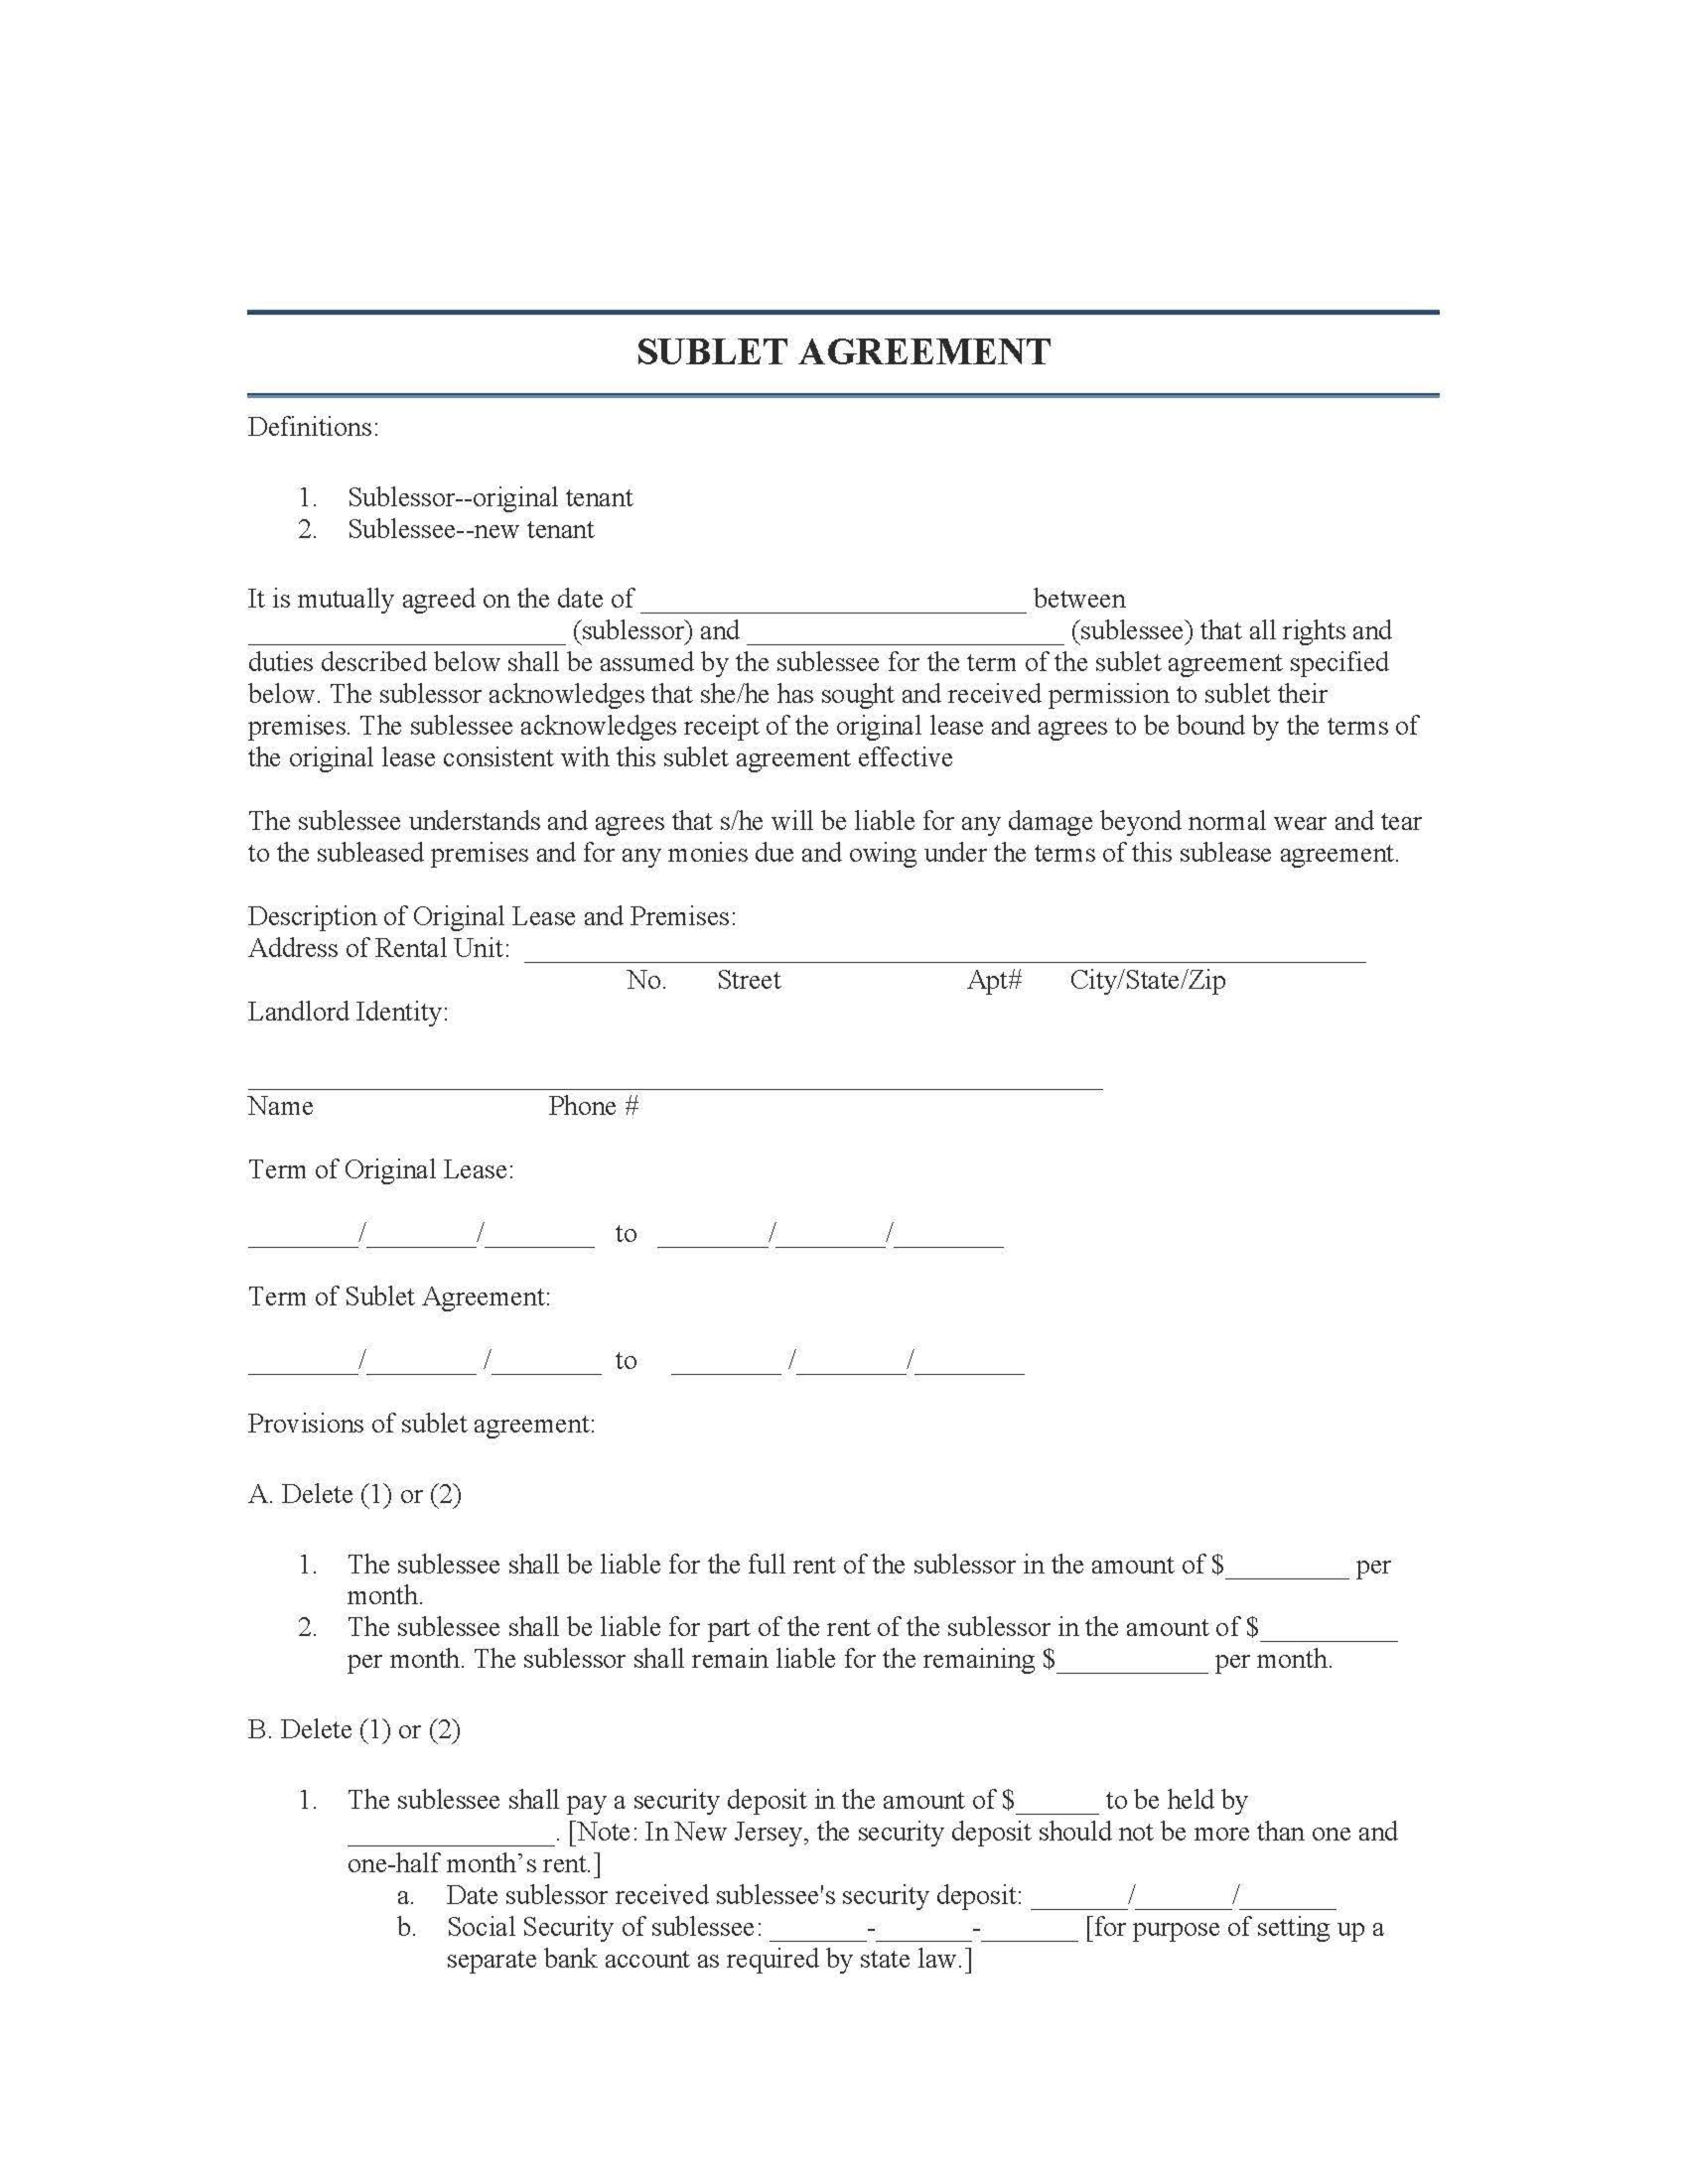 New Jersey Rental Lease Agreement Templates – Sublet Agreement Template